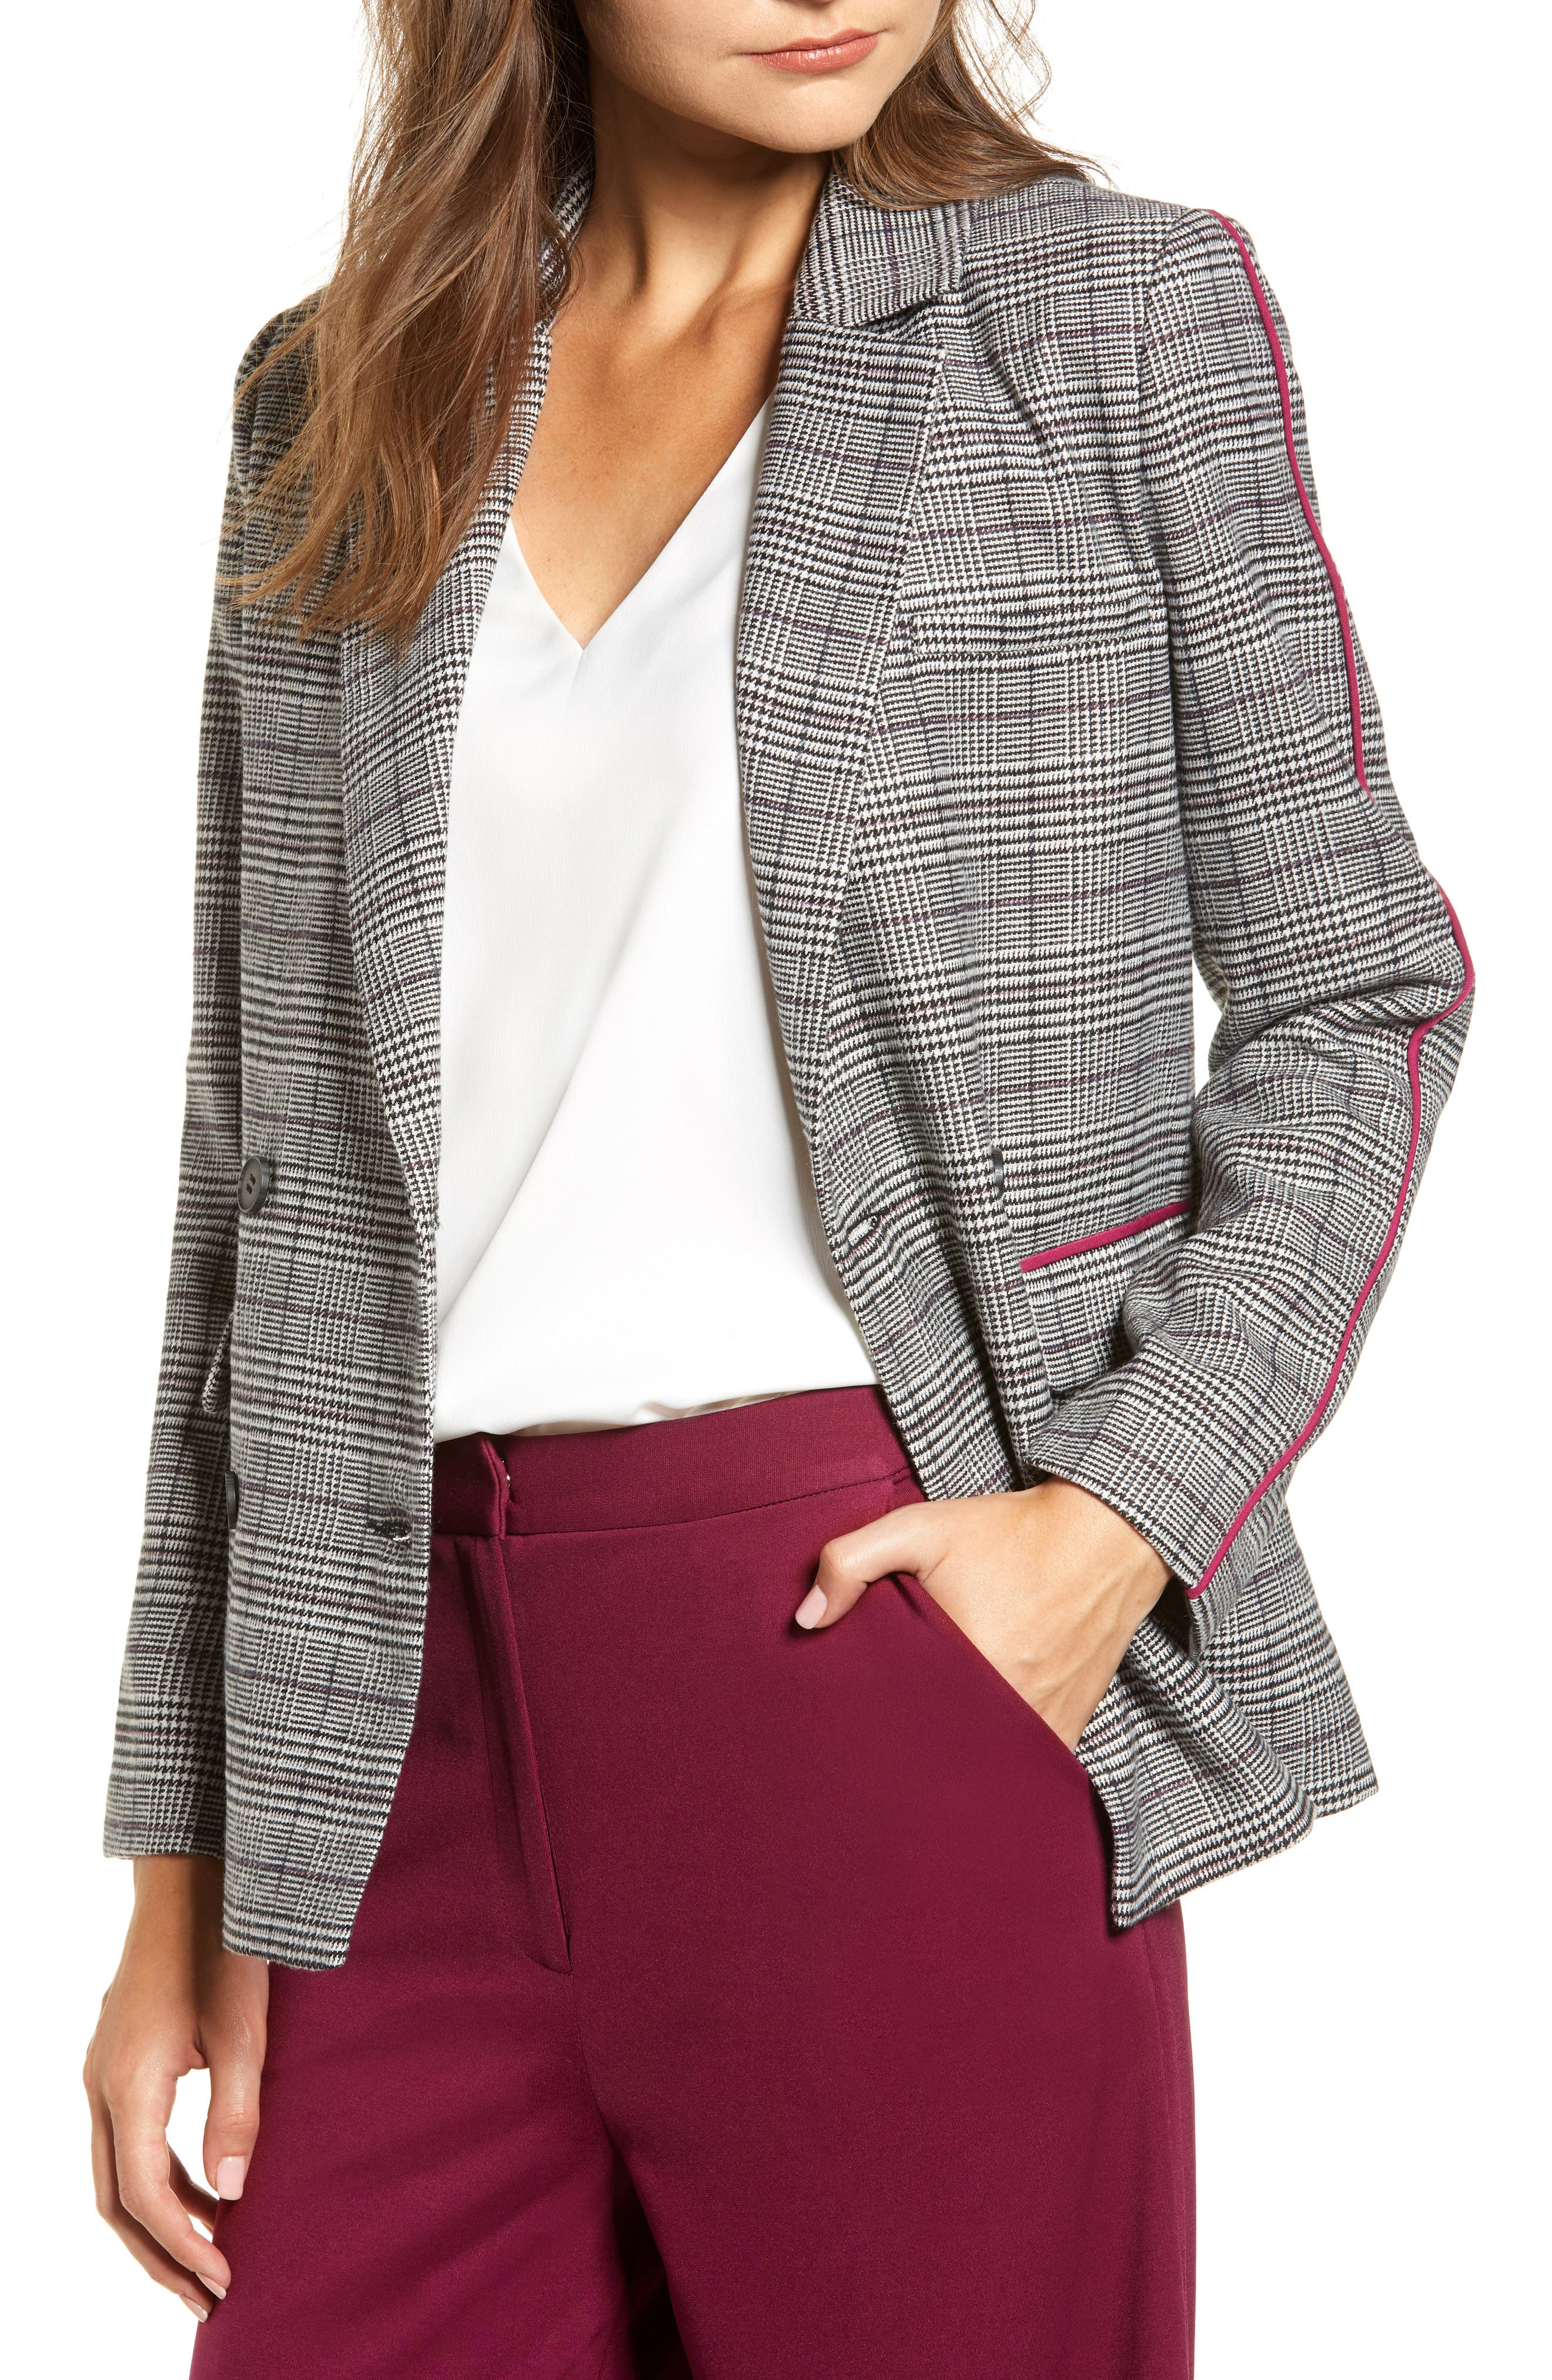 Chriselle Lim Bianca Piped Houndstooth Blazer,                             Main thumbnail 1, color,                             GREY PLAID